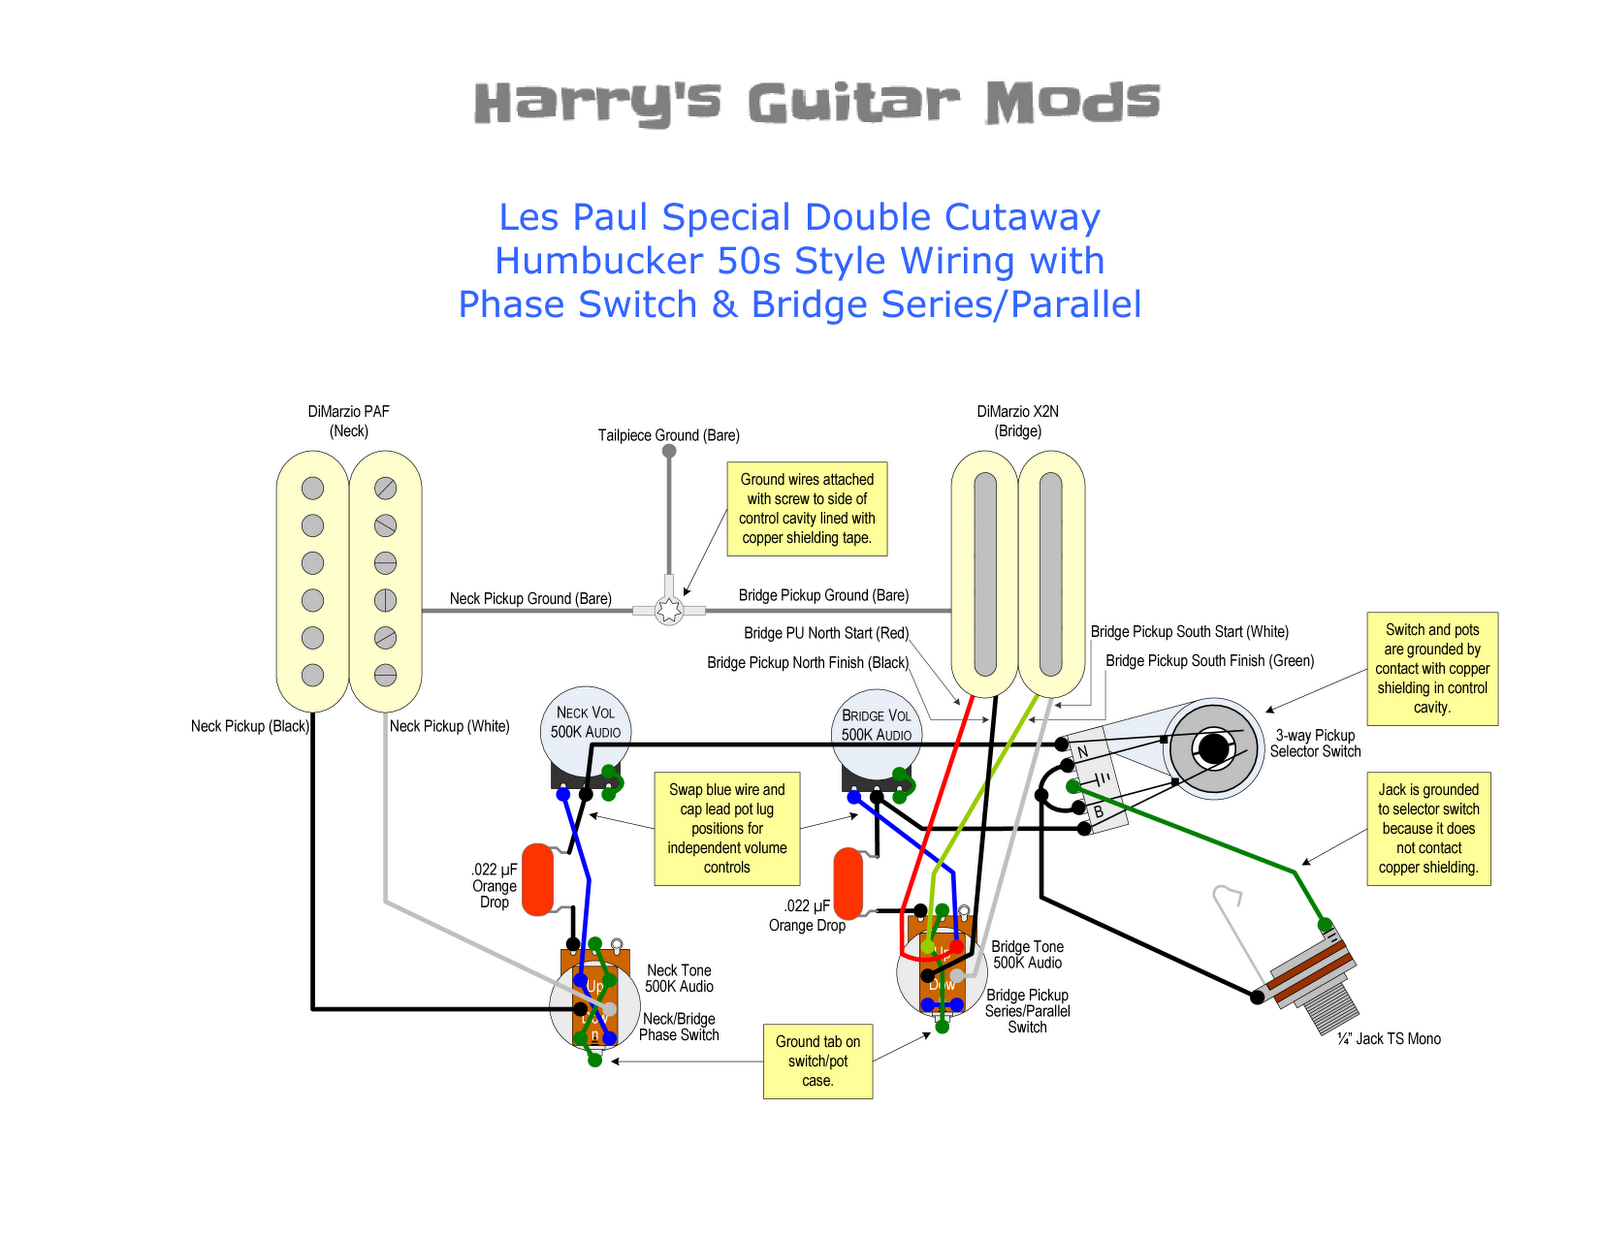 Les Paul Double Cut Wiring Diagram - DIY Enthusiasts Wiring Diagrams •